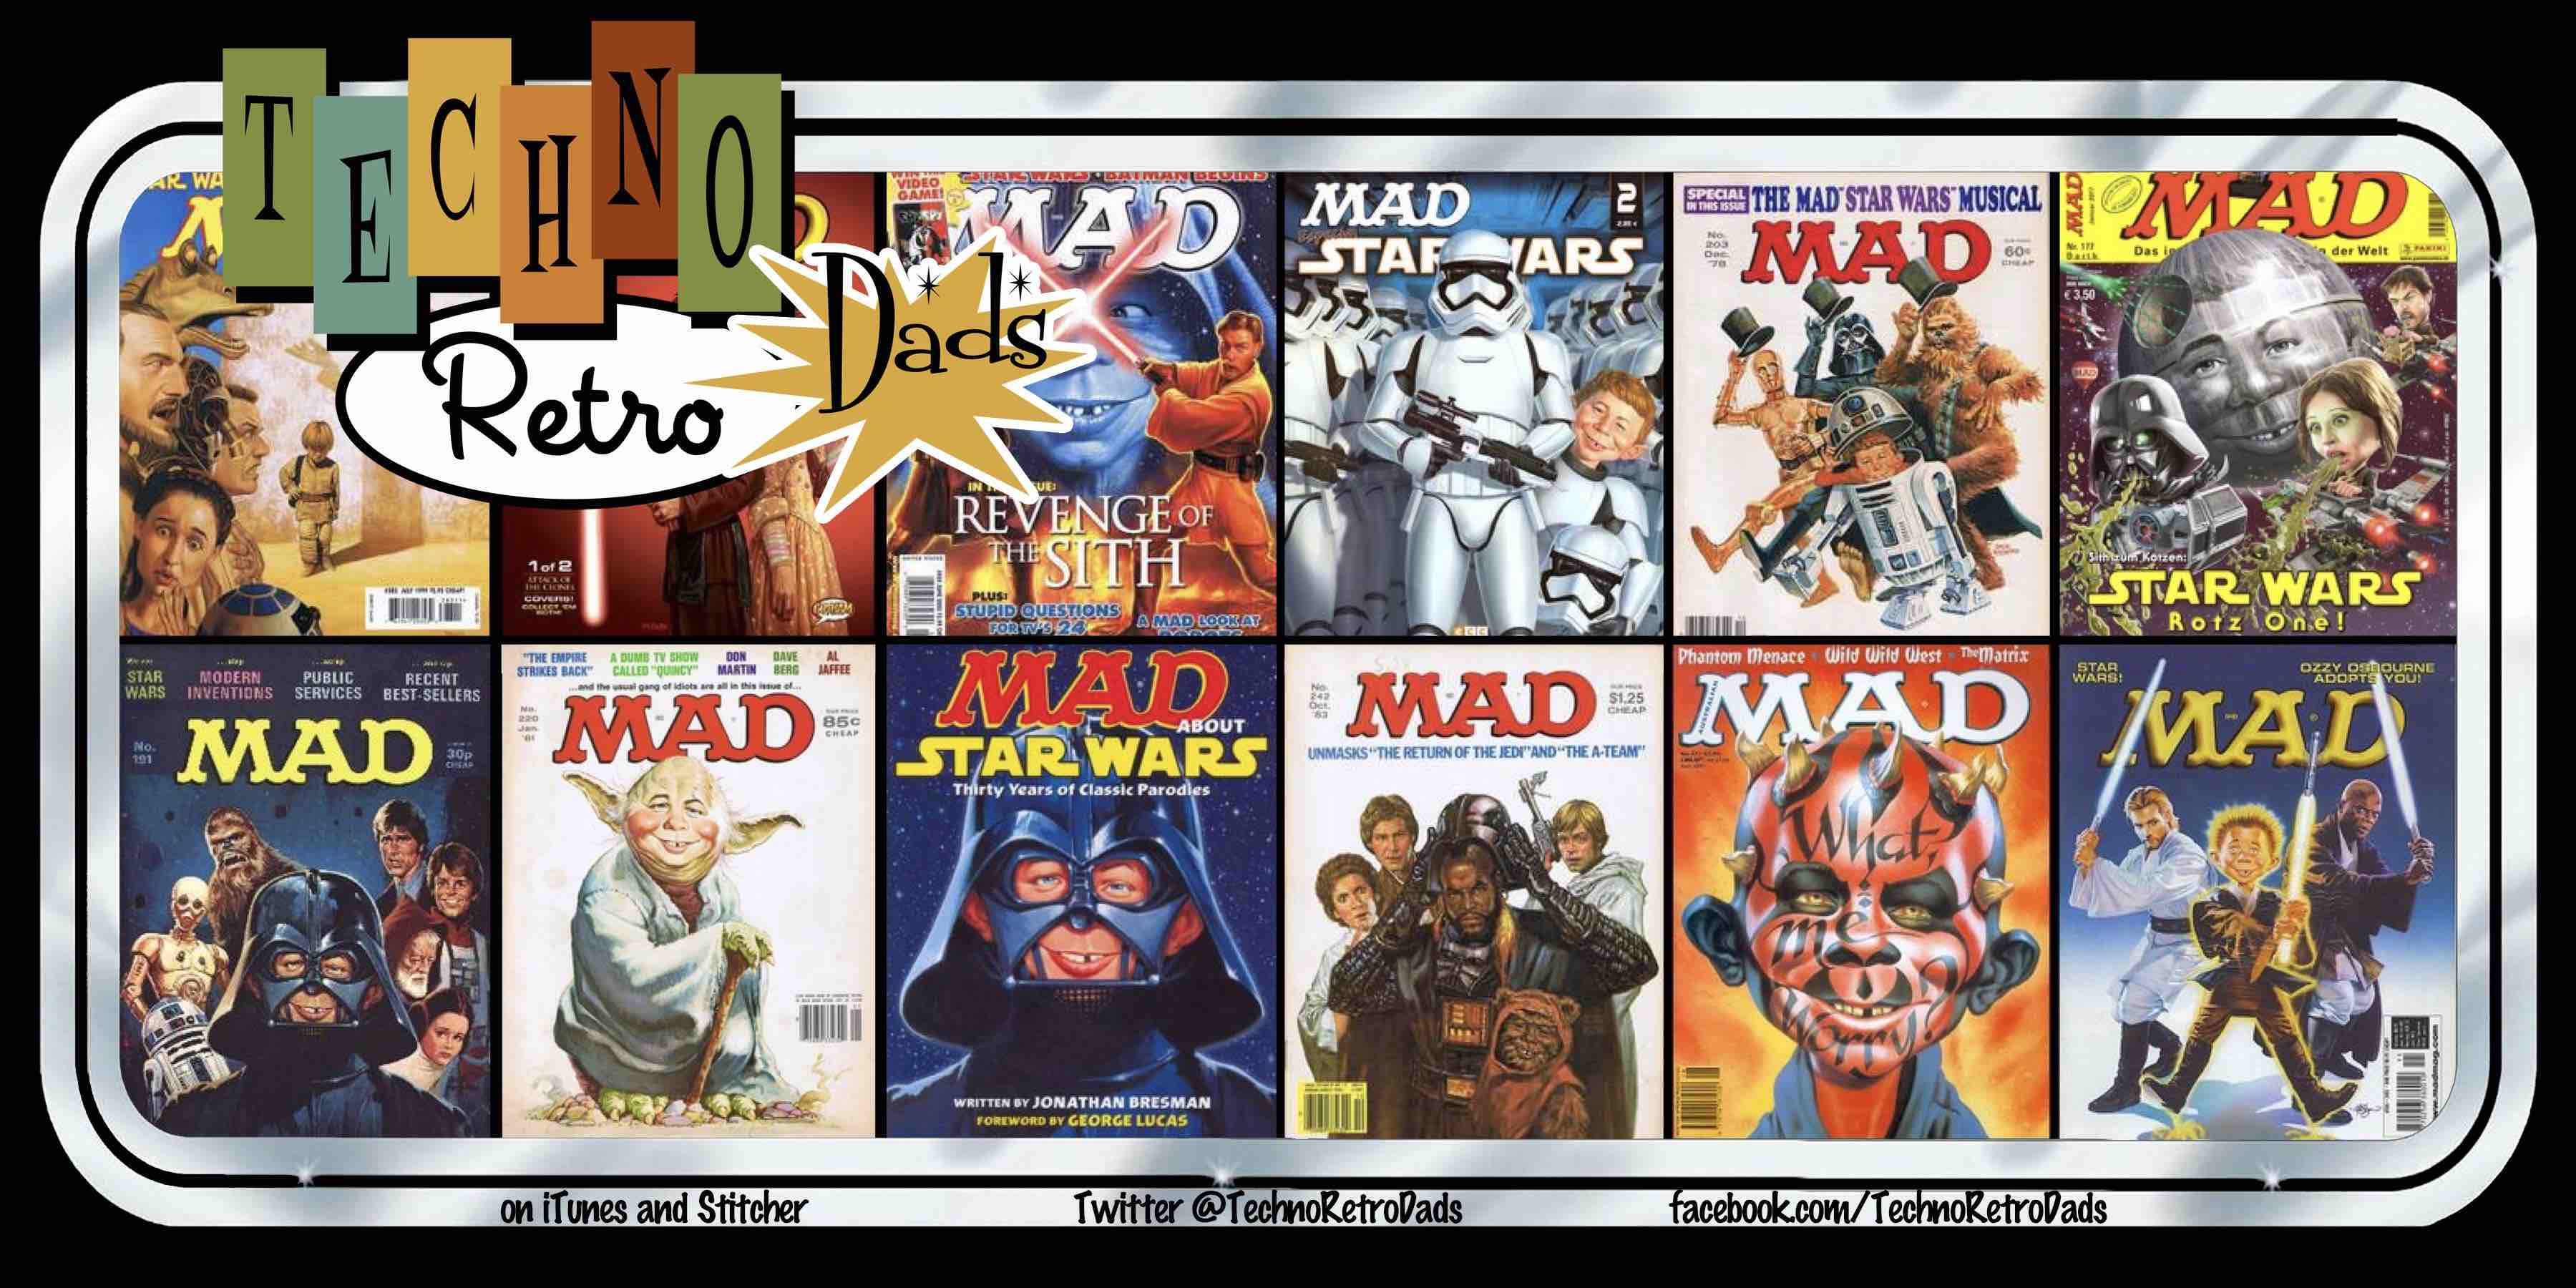 MAD Magazine trolls Star Wars